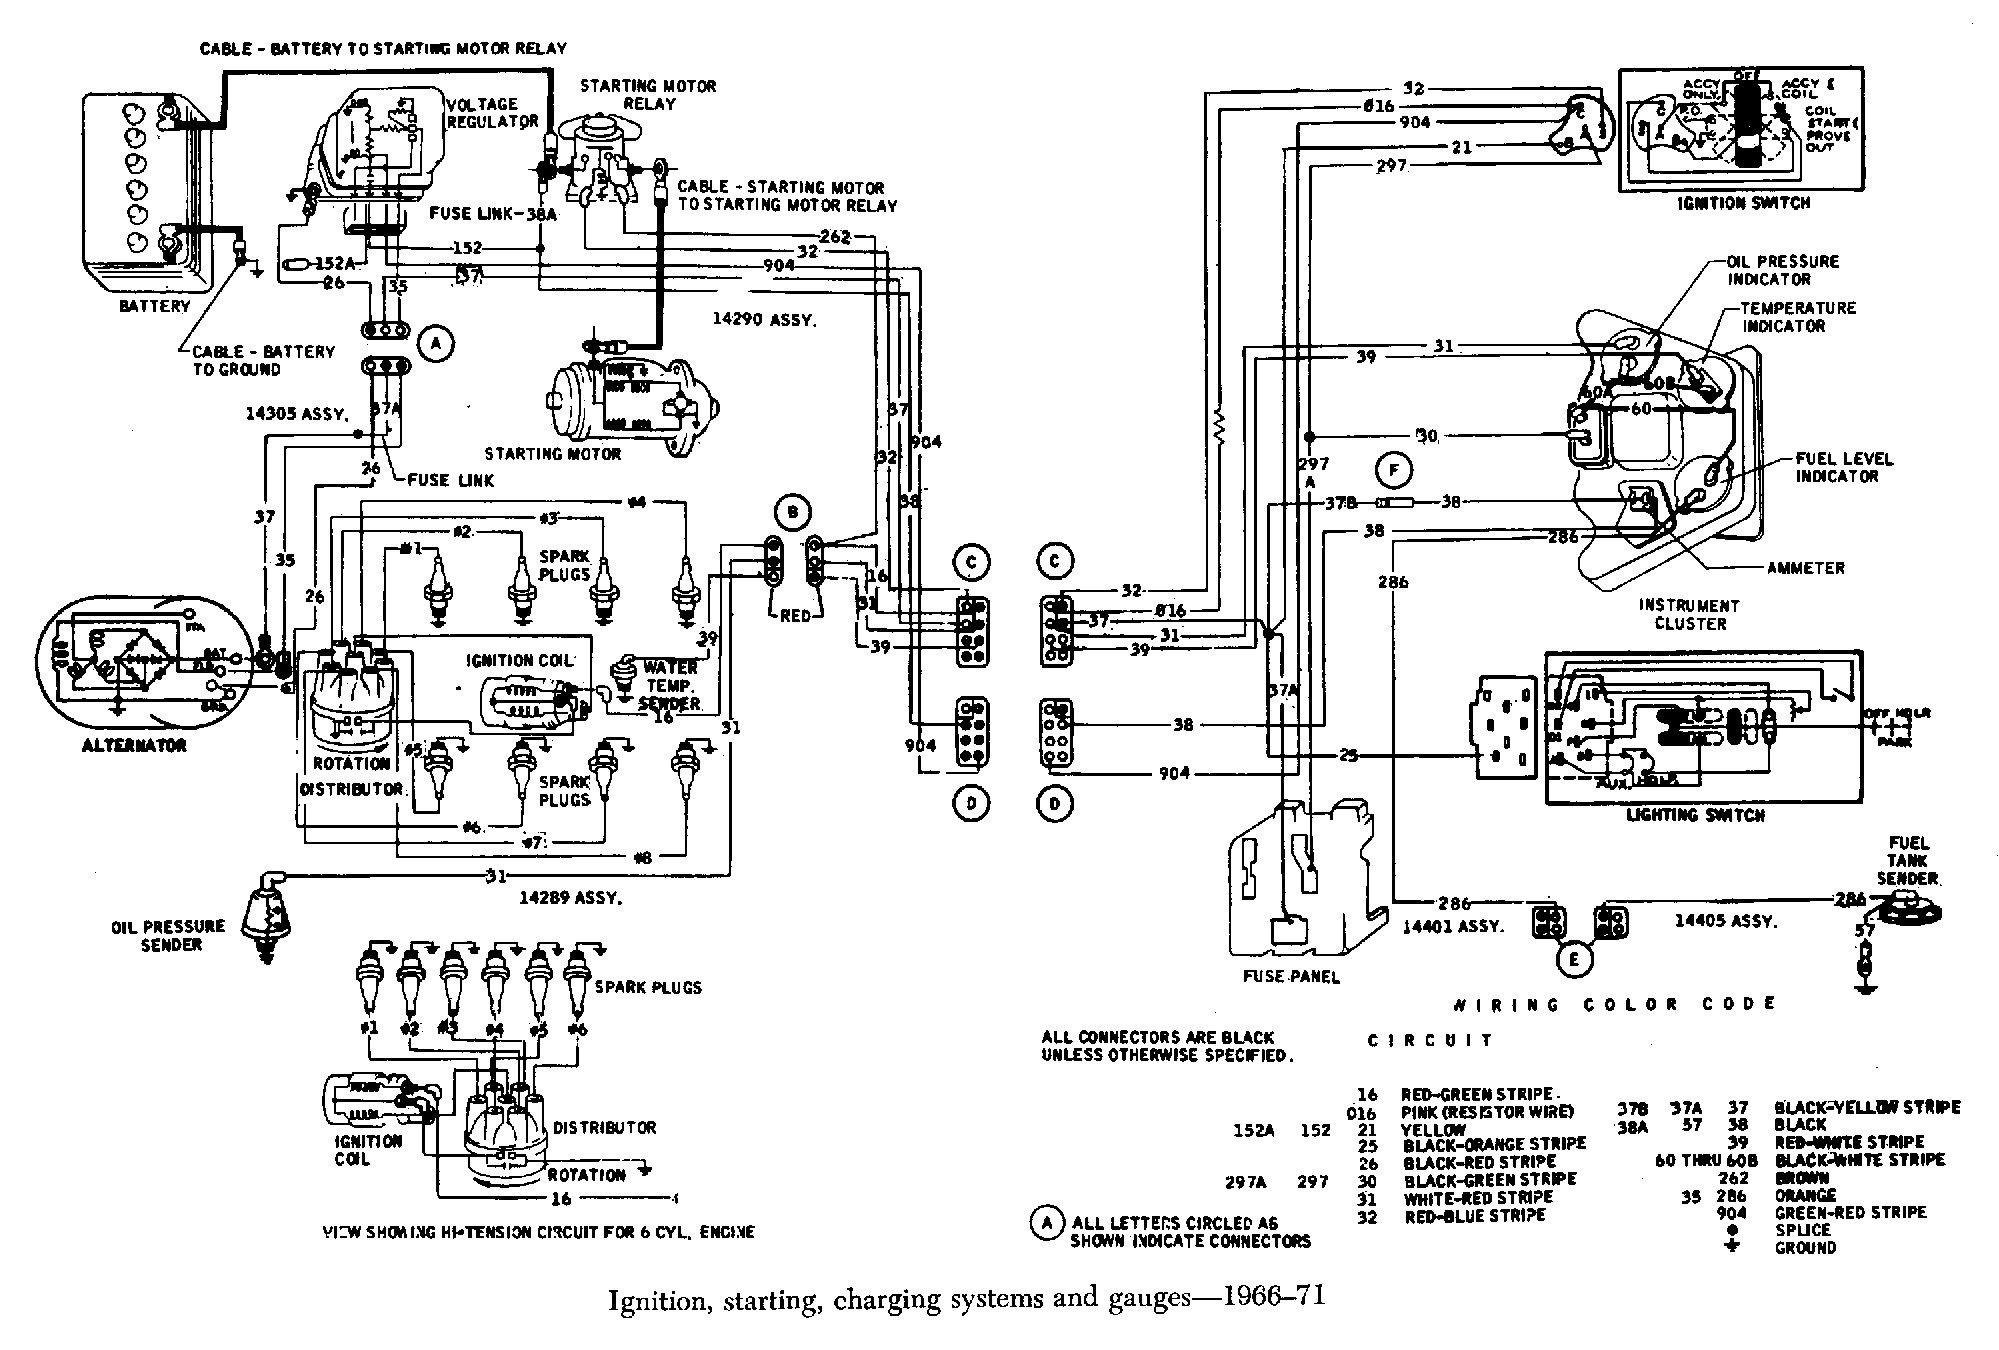 gm starter wiring coil wiring diagrams schematics 66 ford mustang wiring diagram ignition wiring diagram chevy 350 best of wiring diagram image chevy ignition coil wiring diagram new lovely chevy spark plug ignition coil mounts chevy